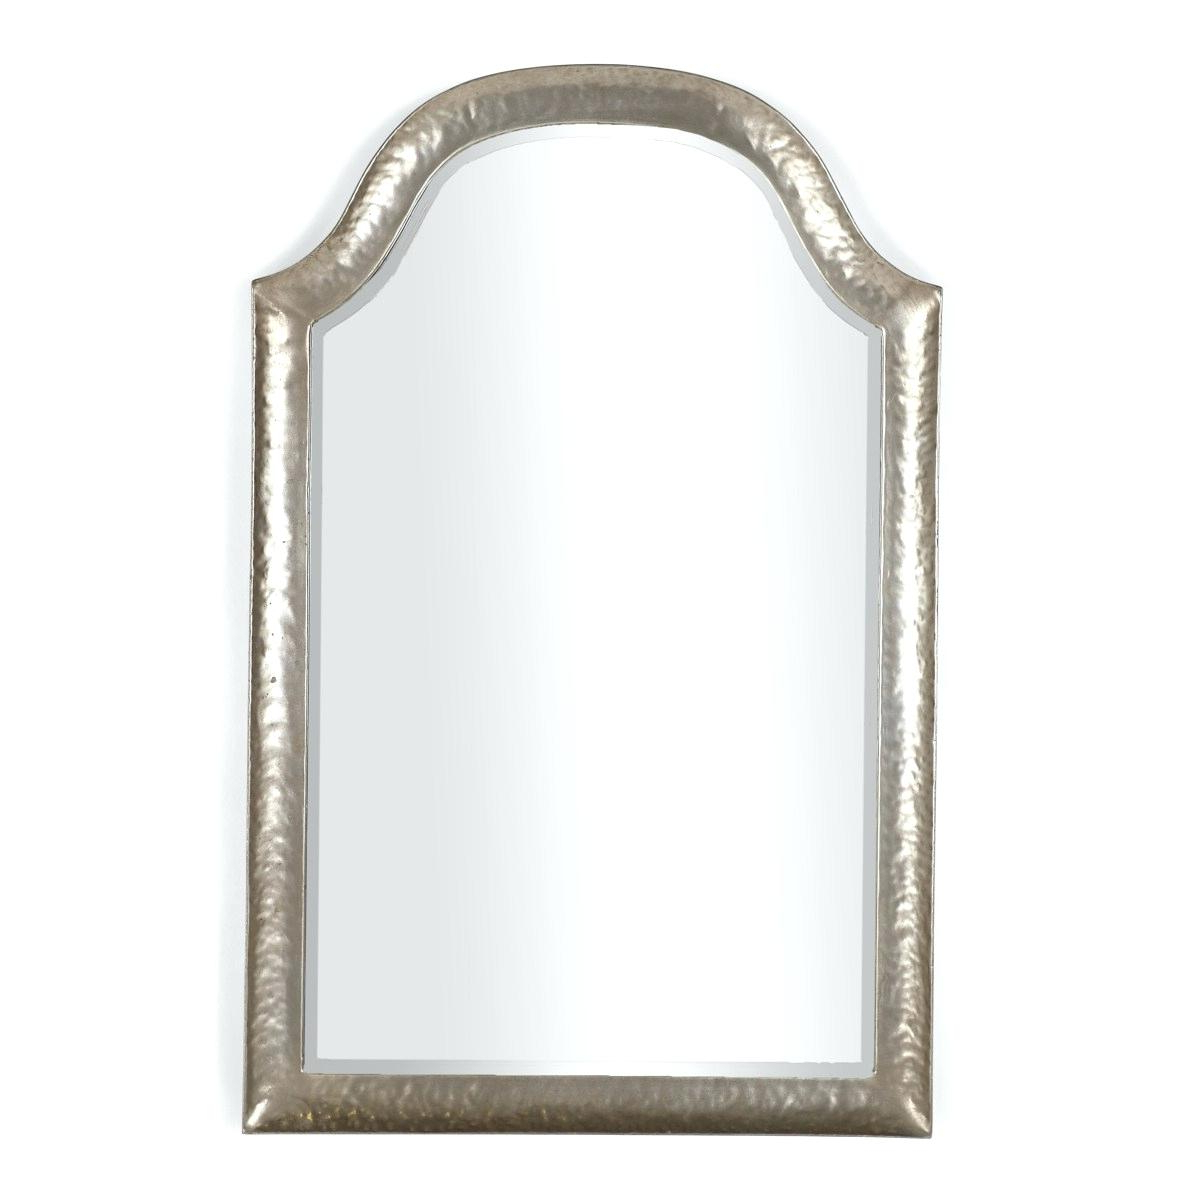 Studded Wall Mirrors Within Fashionable Cowhide Studded Wall Mirror – Fefisbaby (View 12 of 20)